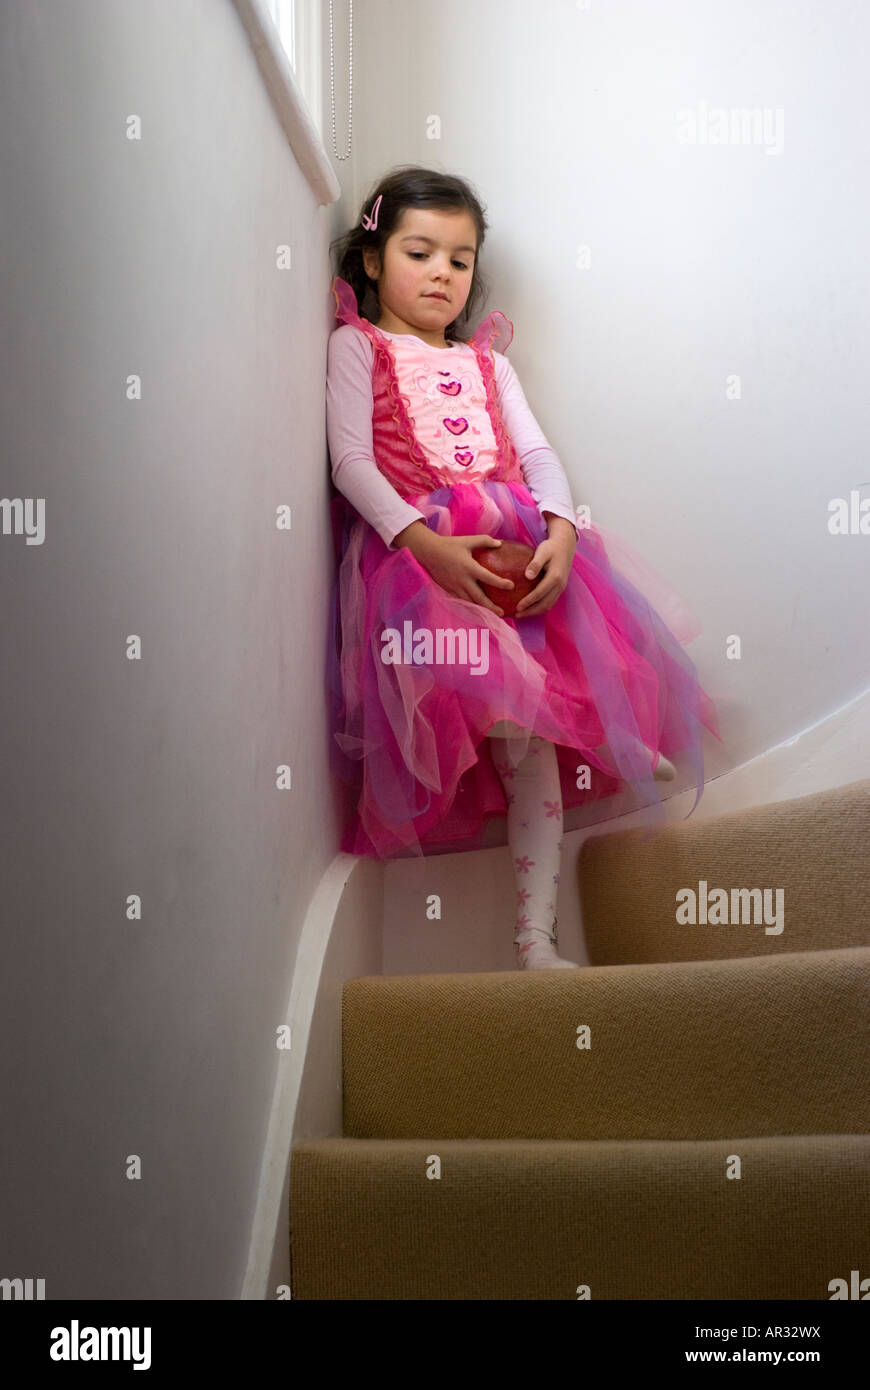 Moody child on staircase - Stock Image